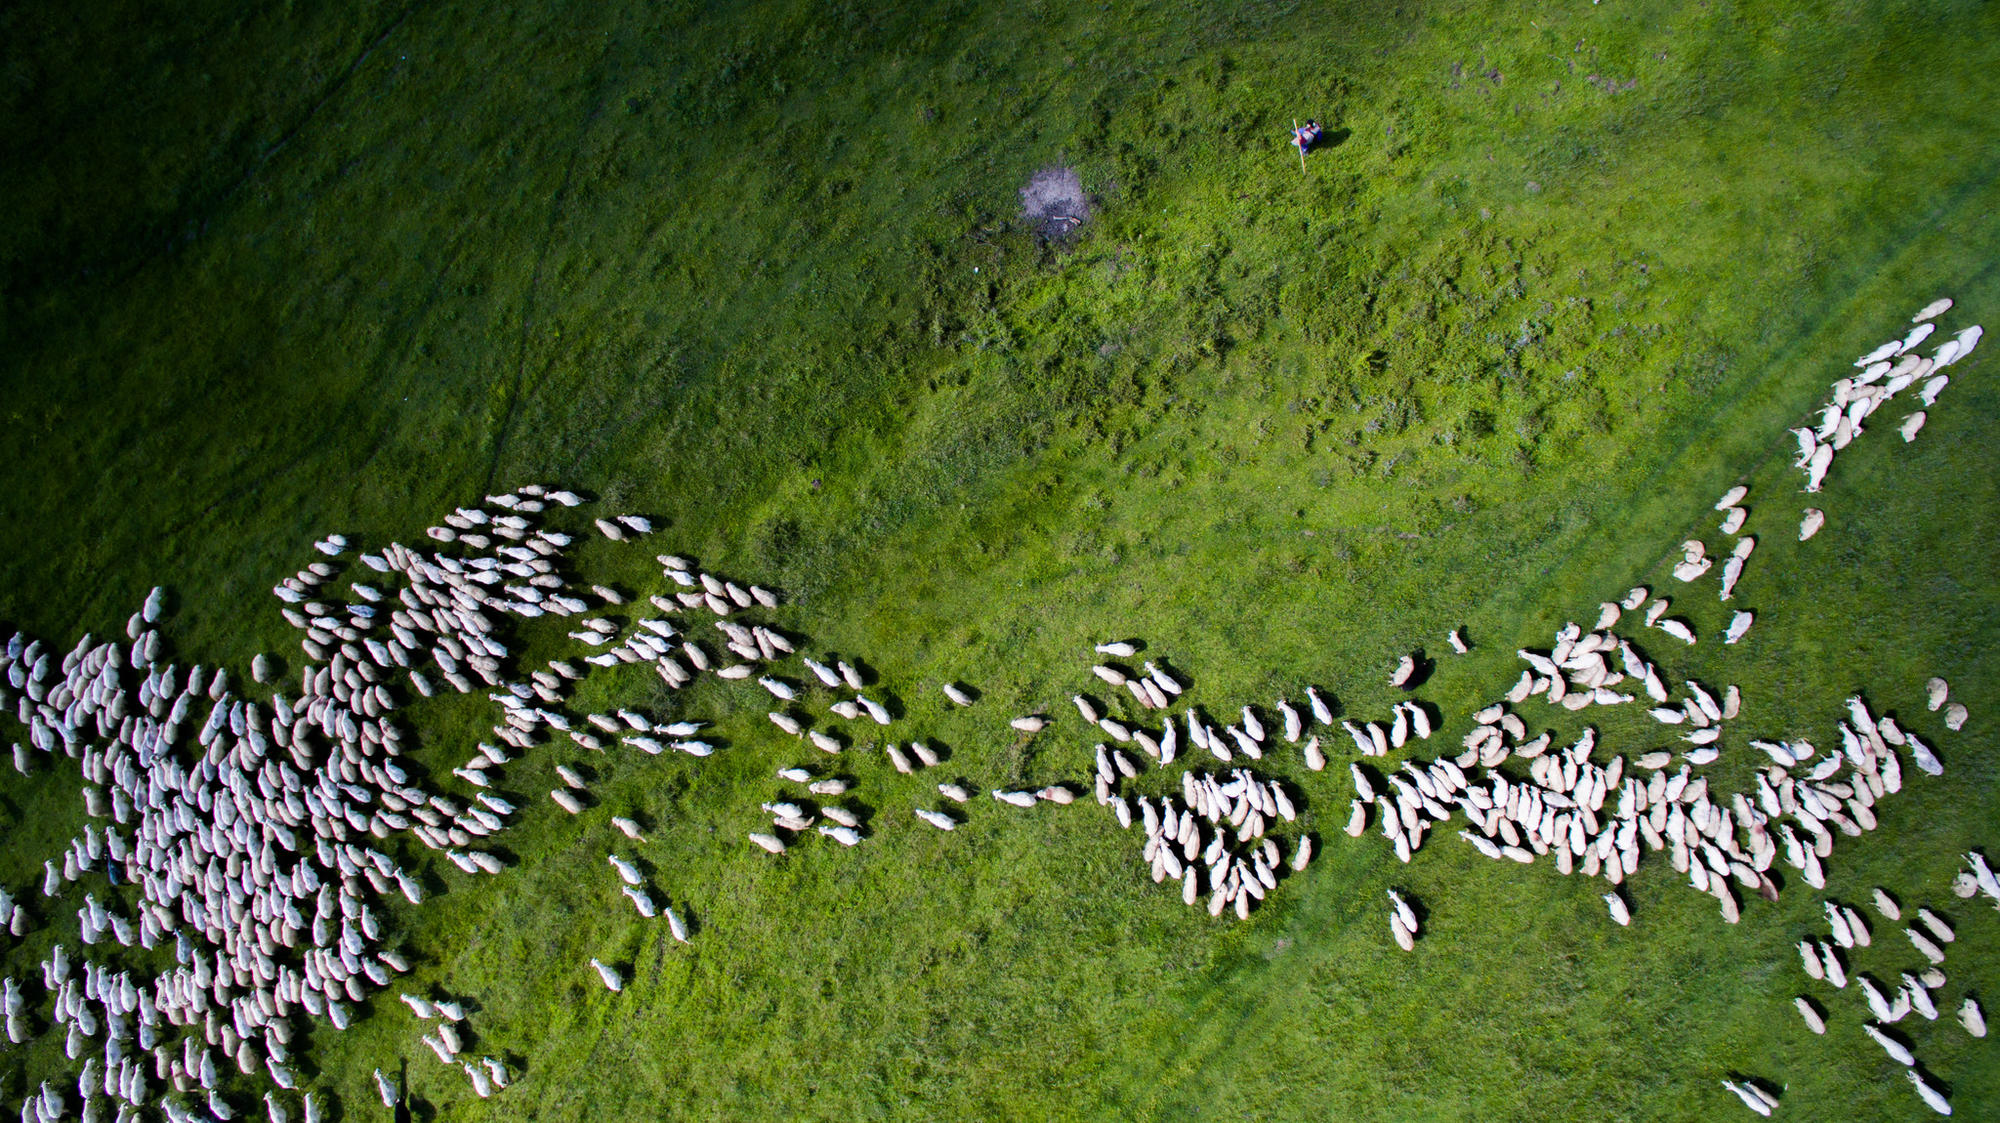 """""""Swarm of Sheep"""" by Szabolcs Ignacz took second place in the nature/wildlife category."""